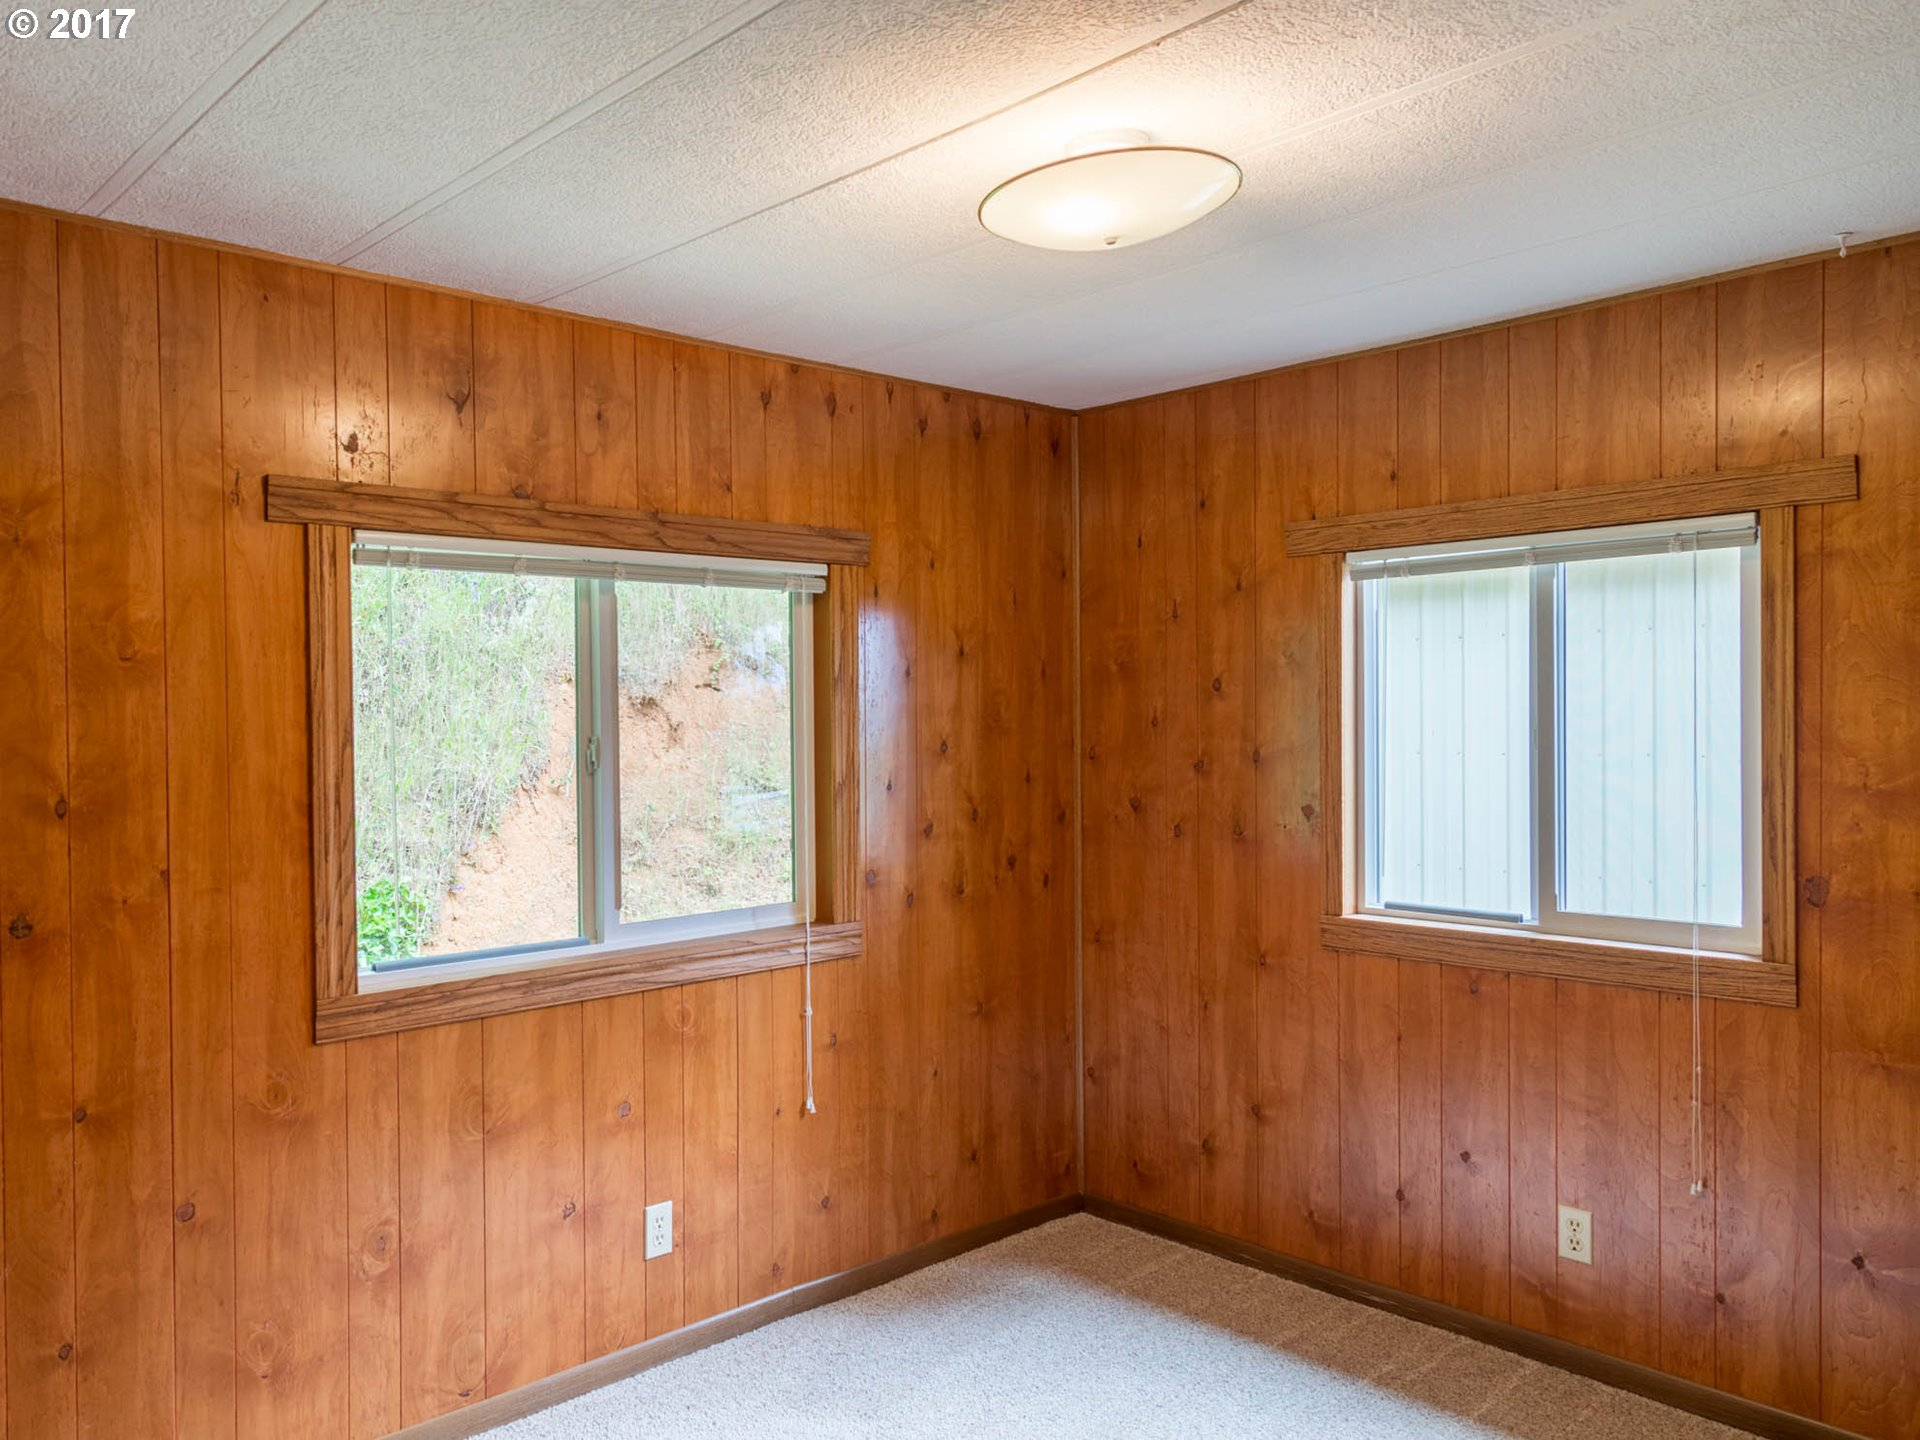 26553 PRICEVIEW DR Monroe, OR 97456 - MLS #: 17678362